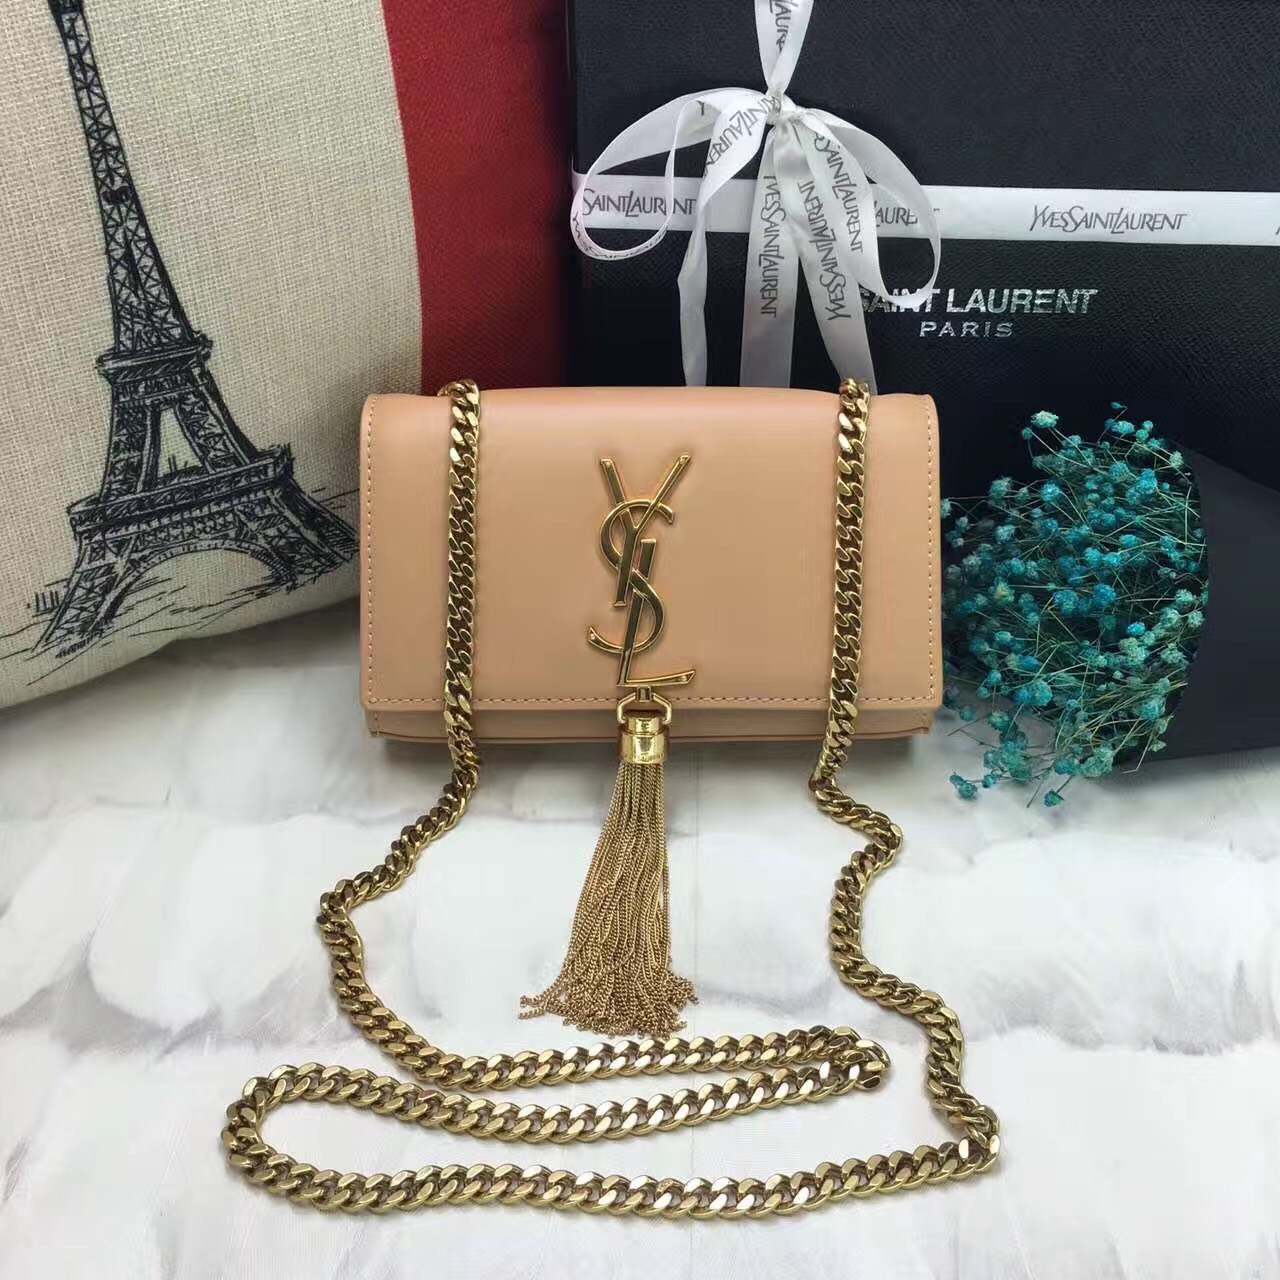 YSL Small Tassel Chain Leather Bag 17cm Apricot Gold